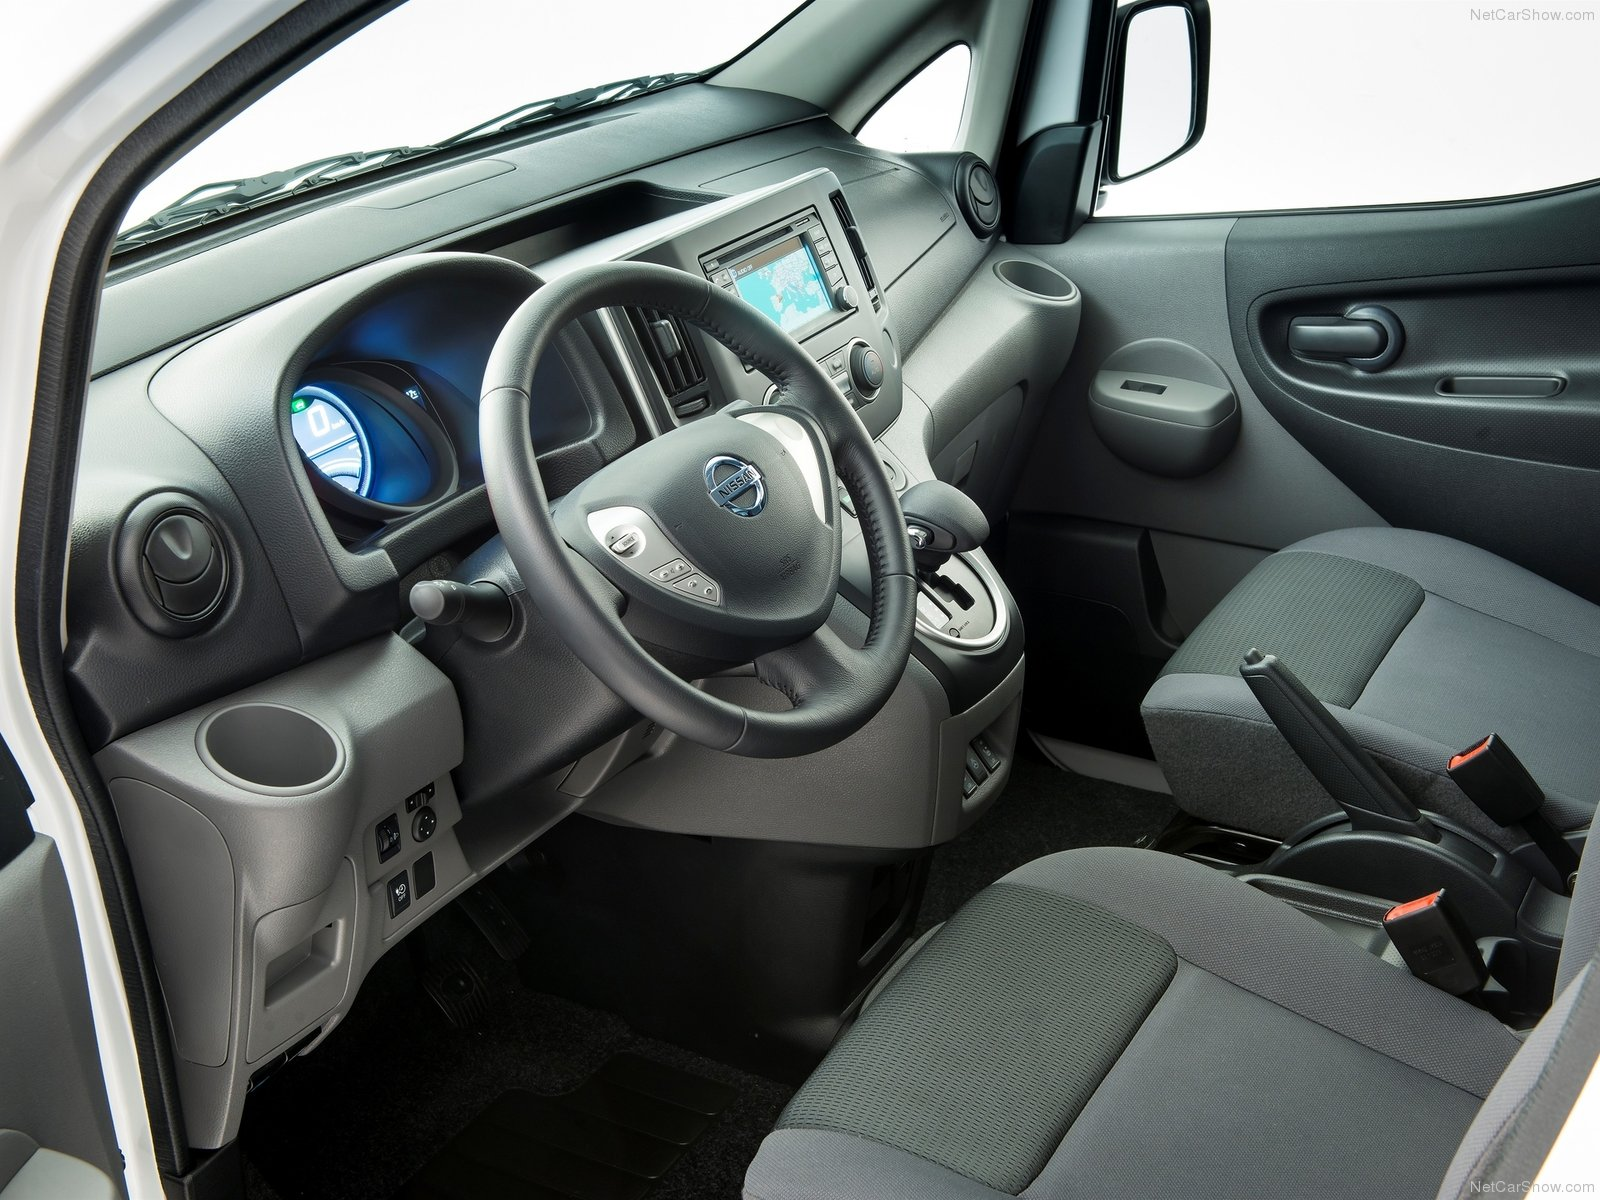 Nissan e-NV200 photo 110736